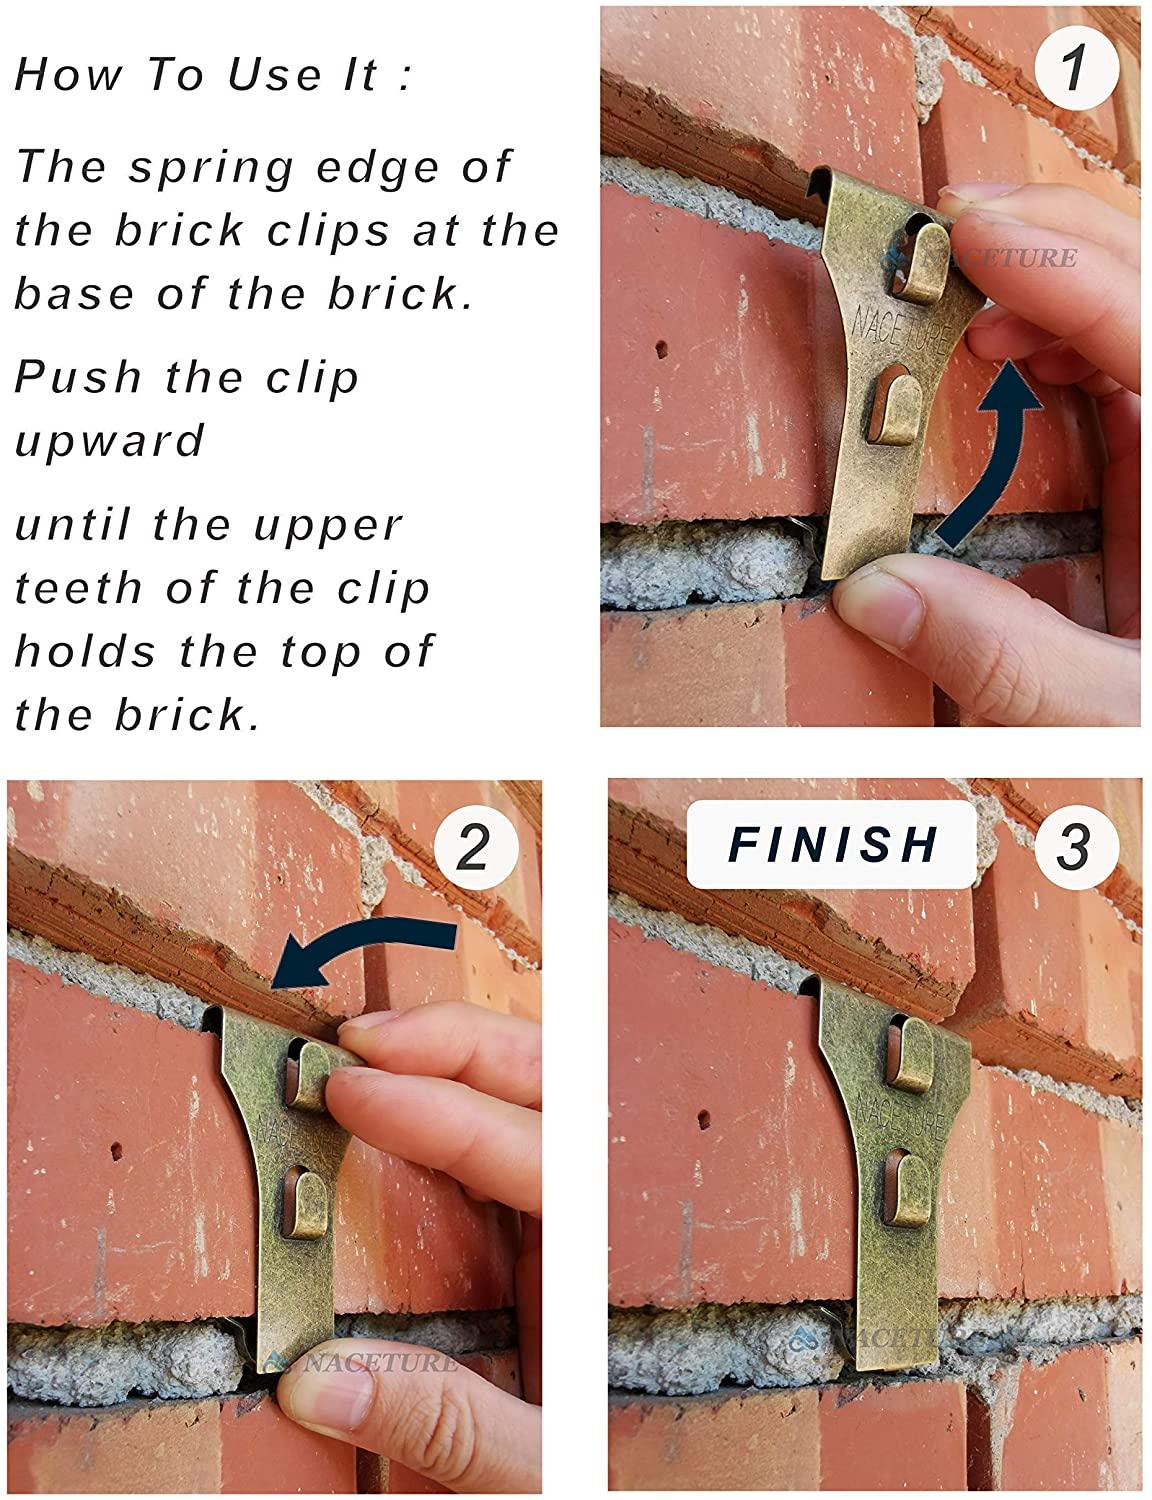 ADD-ON: Set of 2 Brick-Clips Project Pine Designs